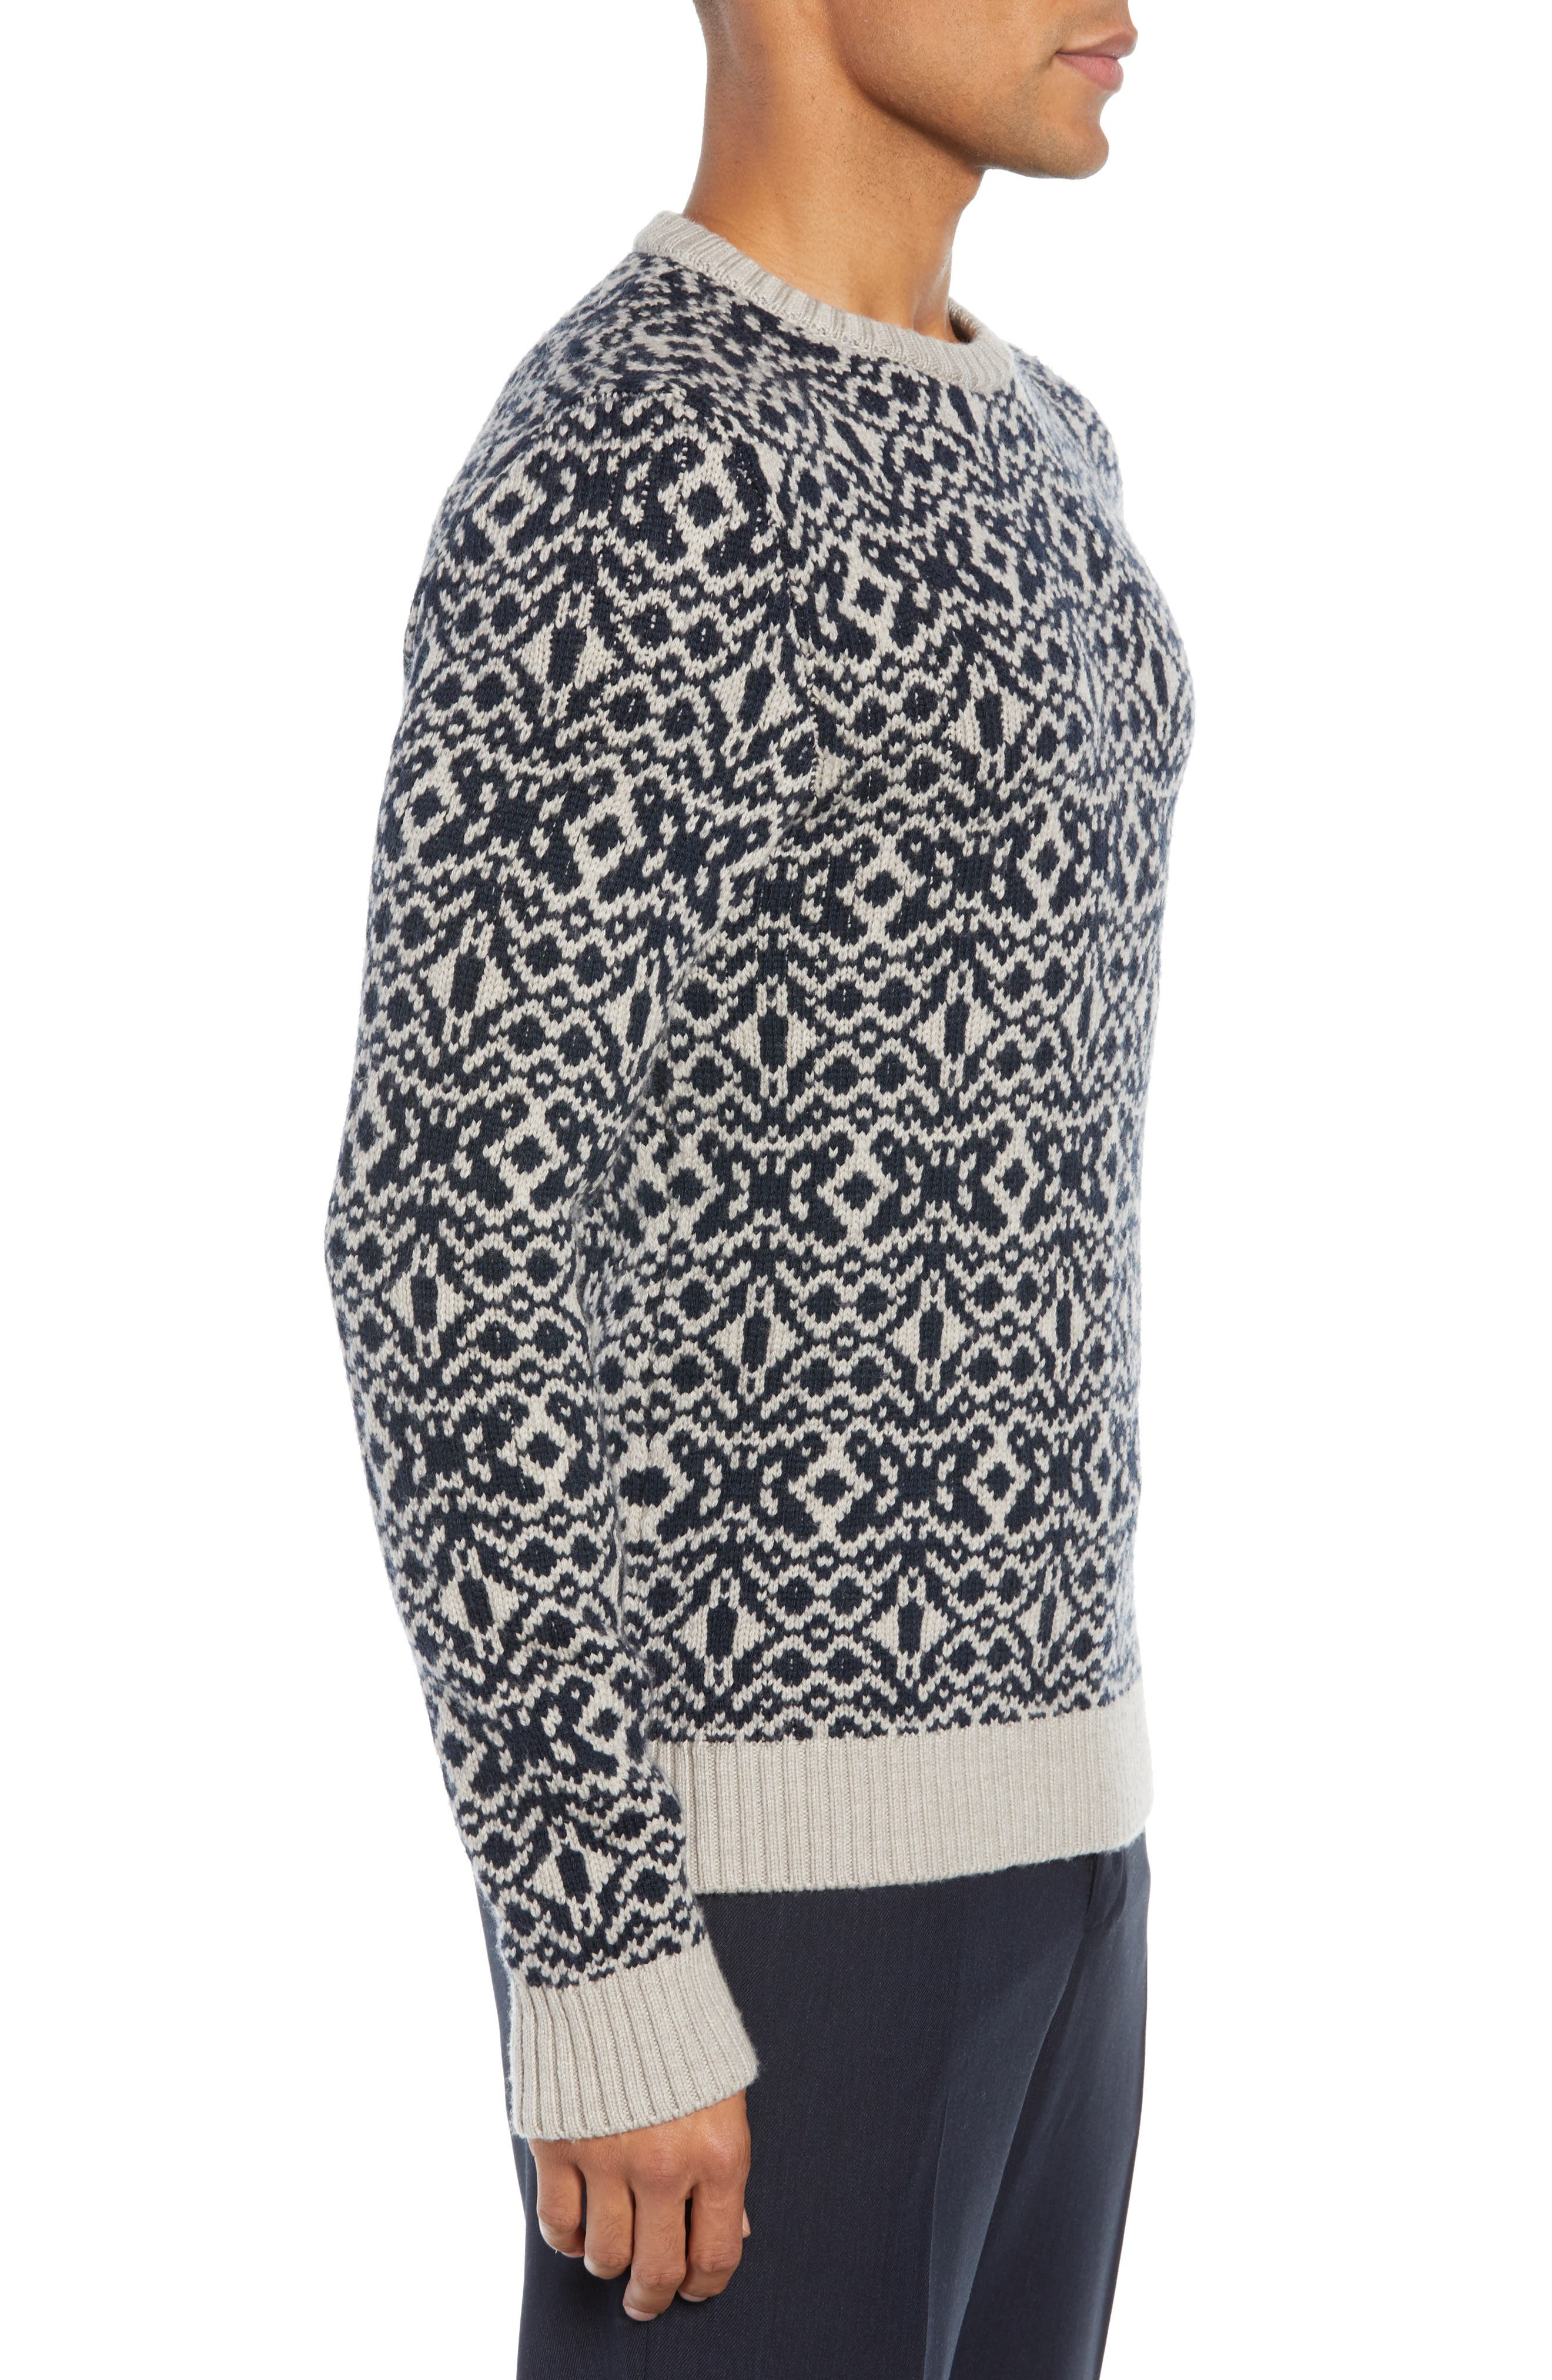 Patterned Wool Crewneck Sweater,                             Alternate thumbnail 3, color,                             STONE